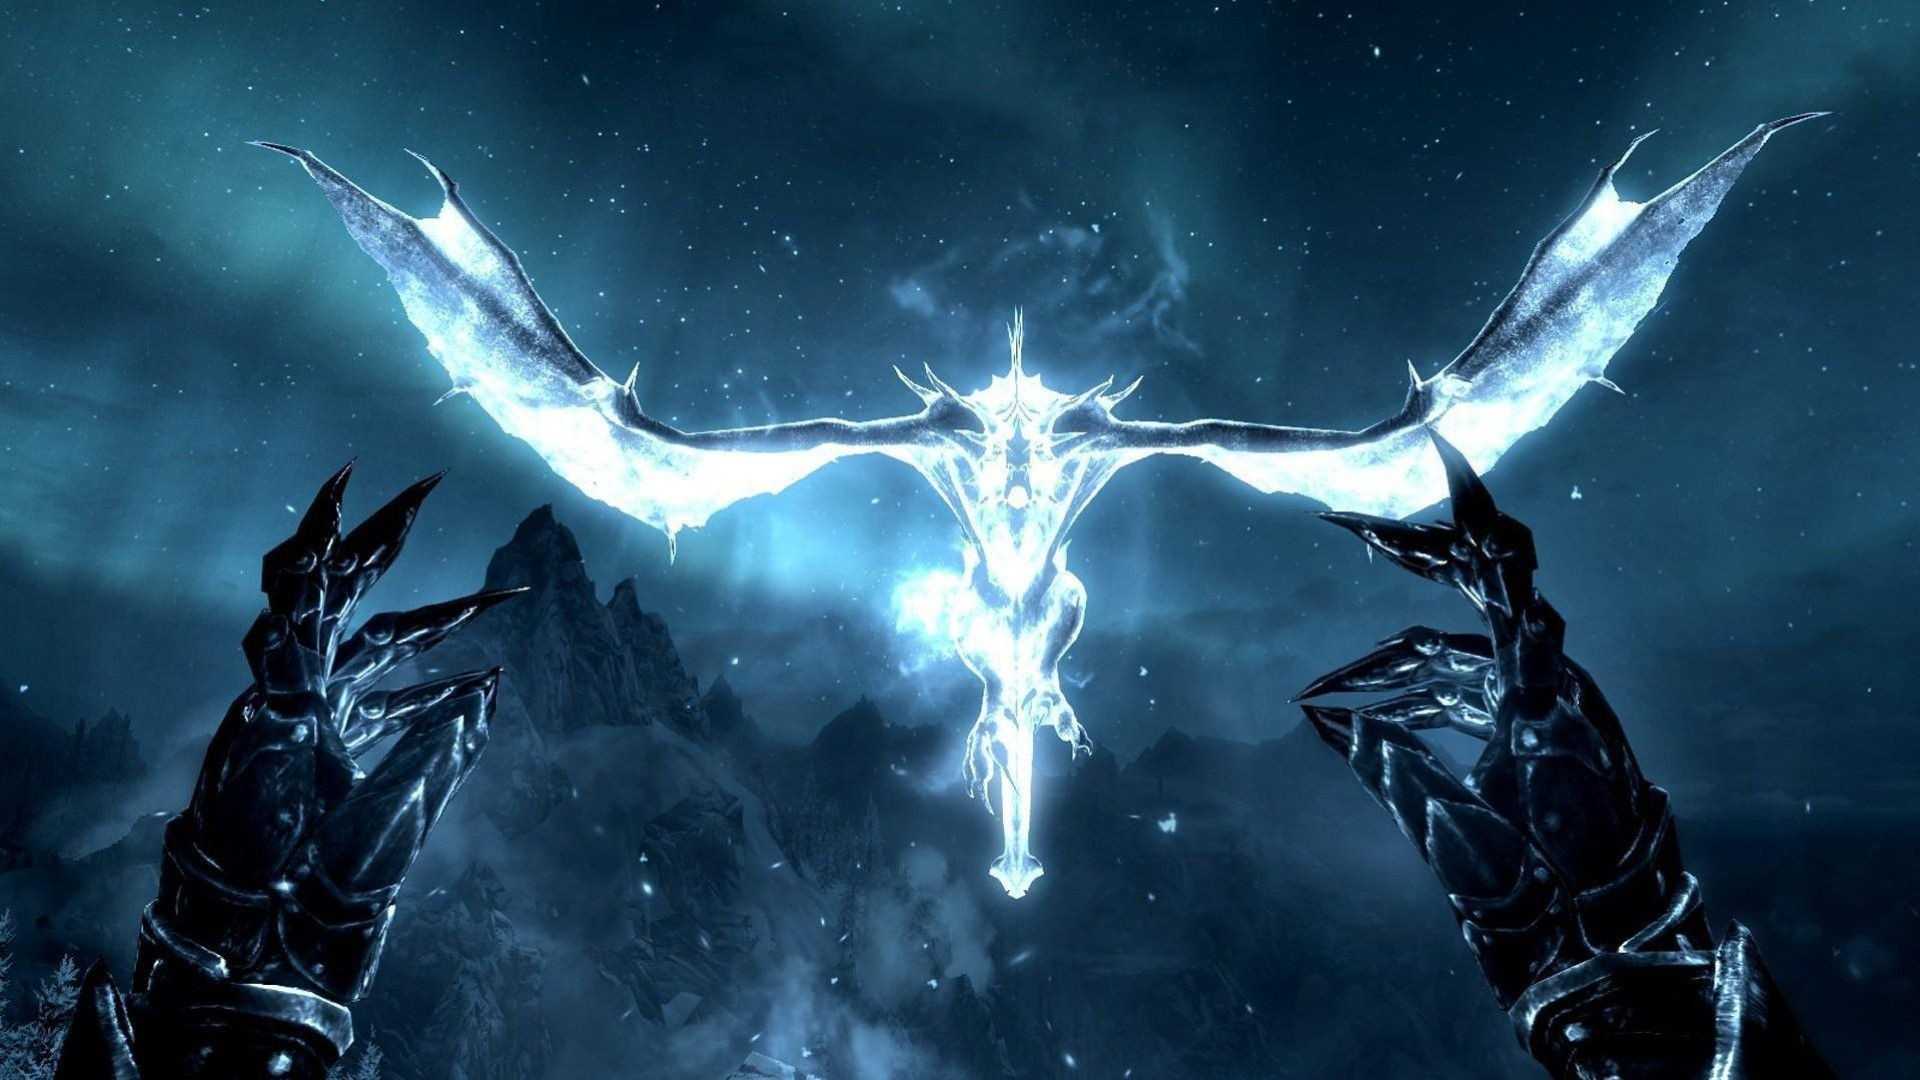 skyrim epic pictures, cool skyrim wallpapers